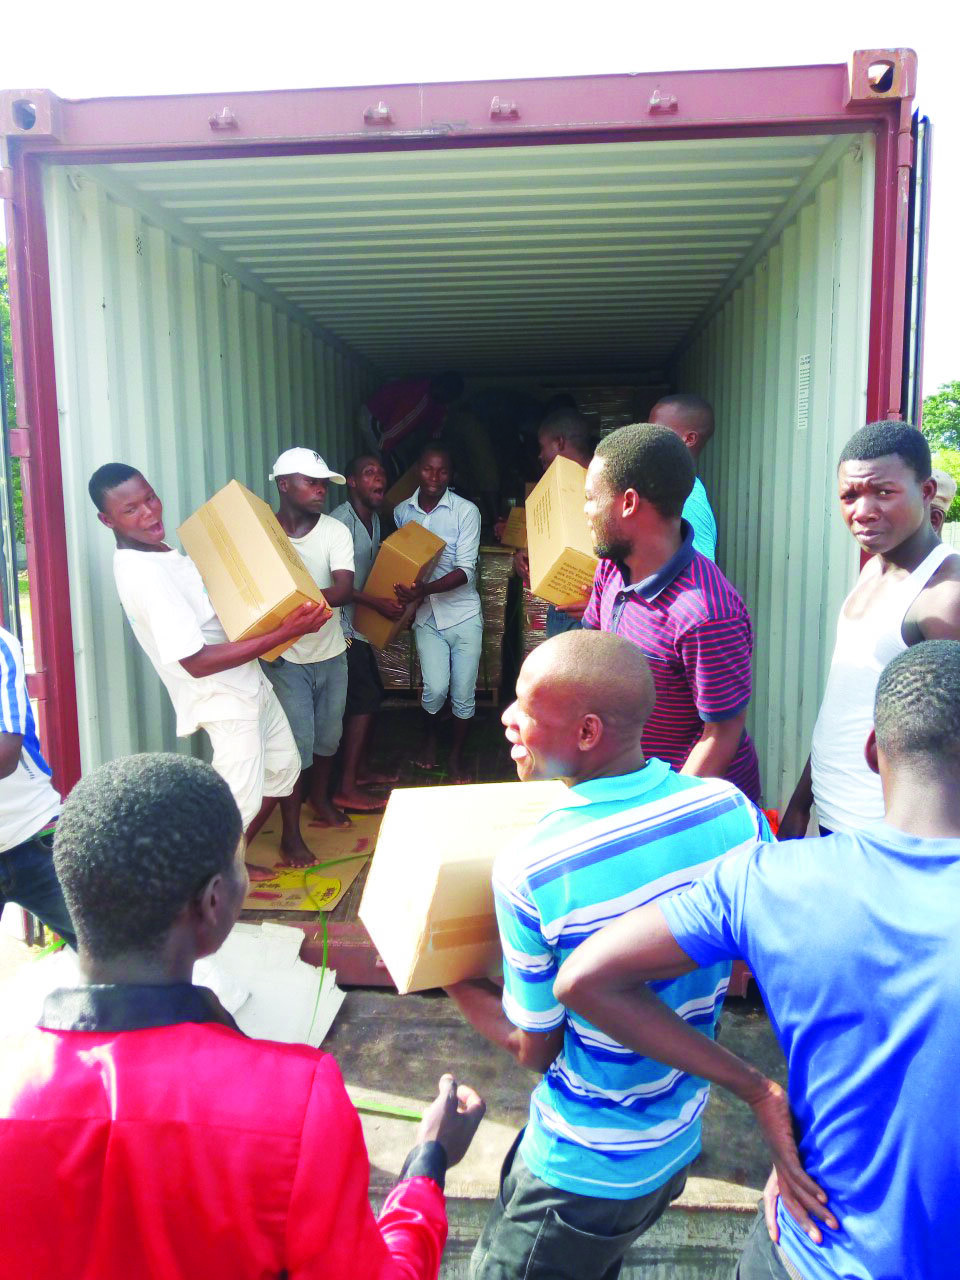 men unloading boxes of Bibles from a shipping container